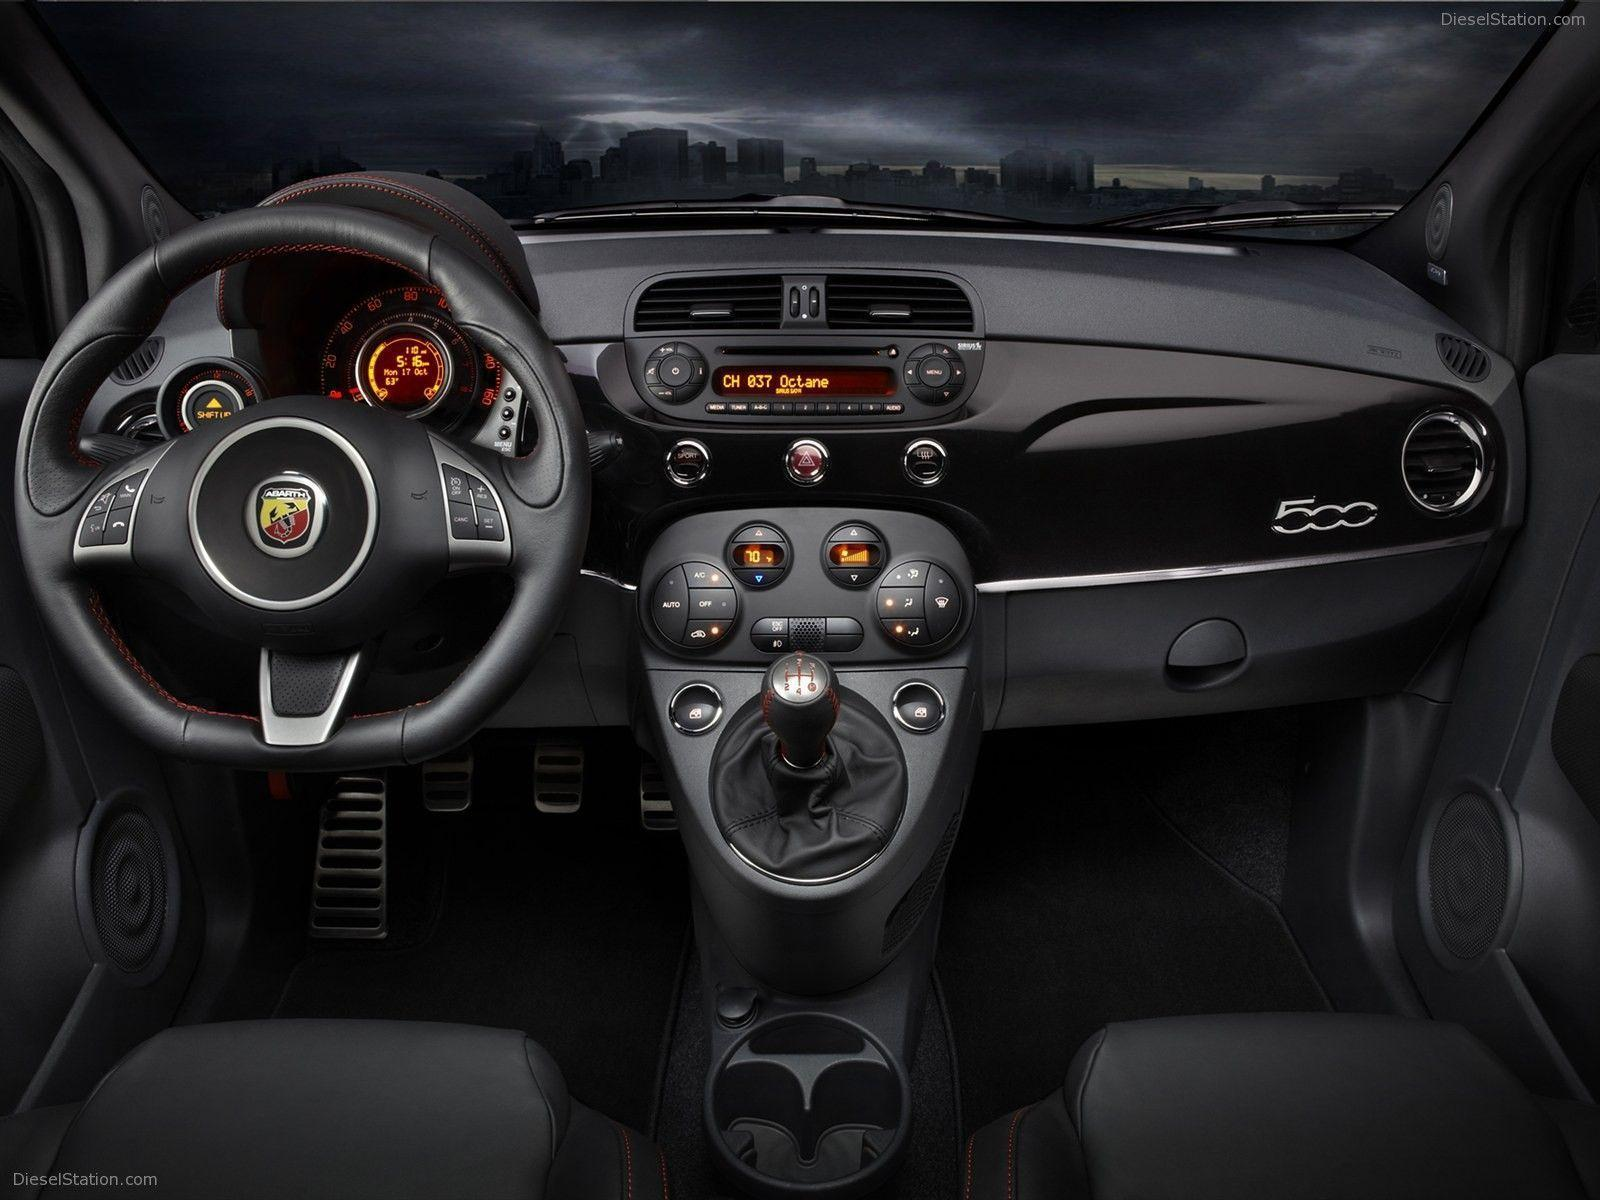 Fiat 500 Abarth 2012 Exotic Car Wallpapers #02 of 58 : Diesel Station